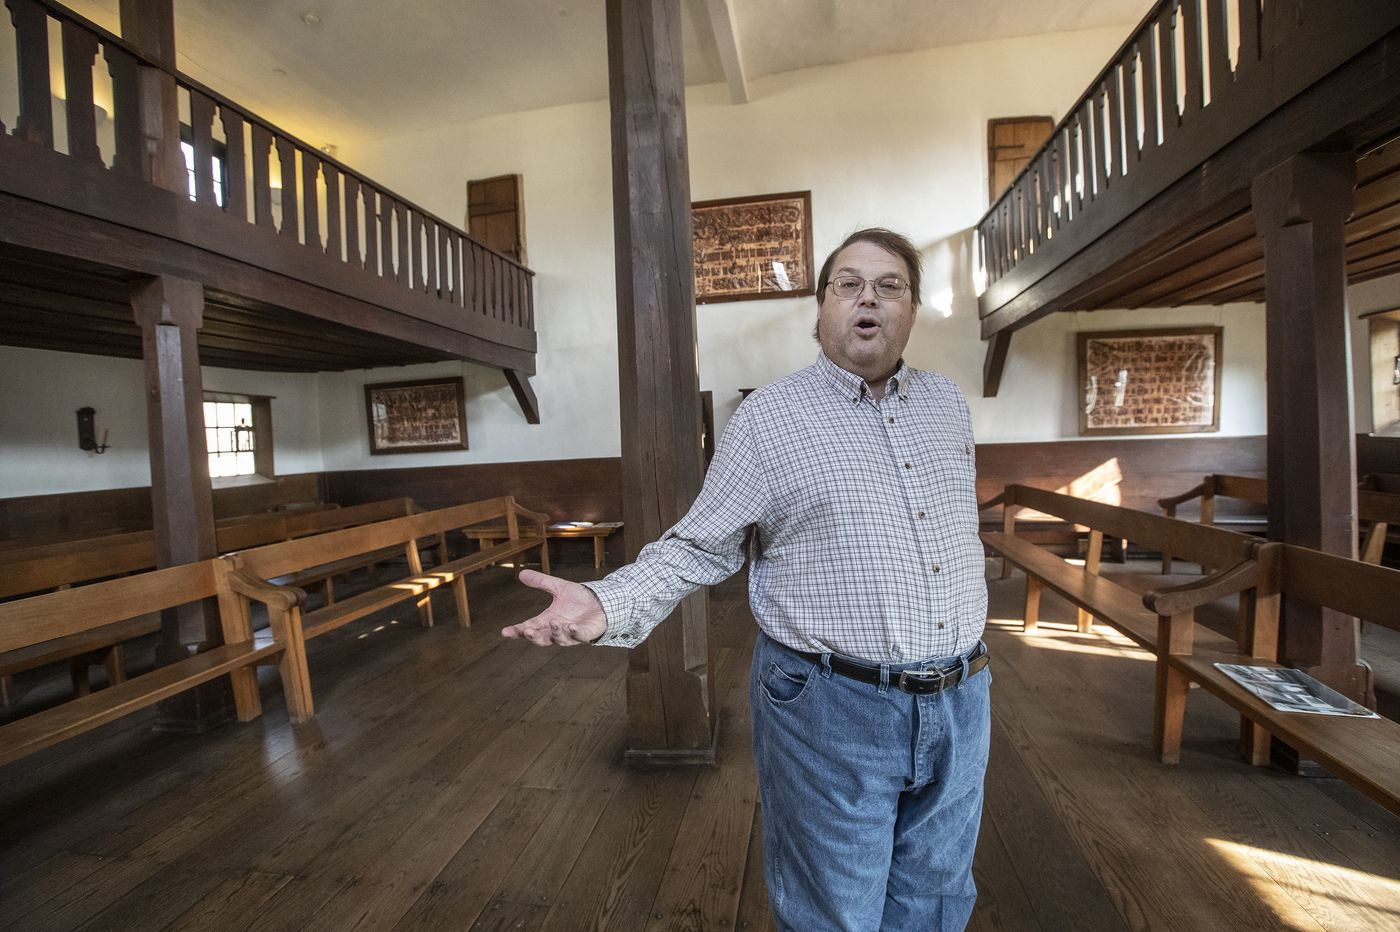 In Pennsylvania's conservative heartland, a historic cloister explores the immigrant struggle